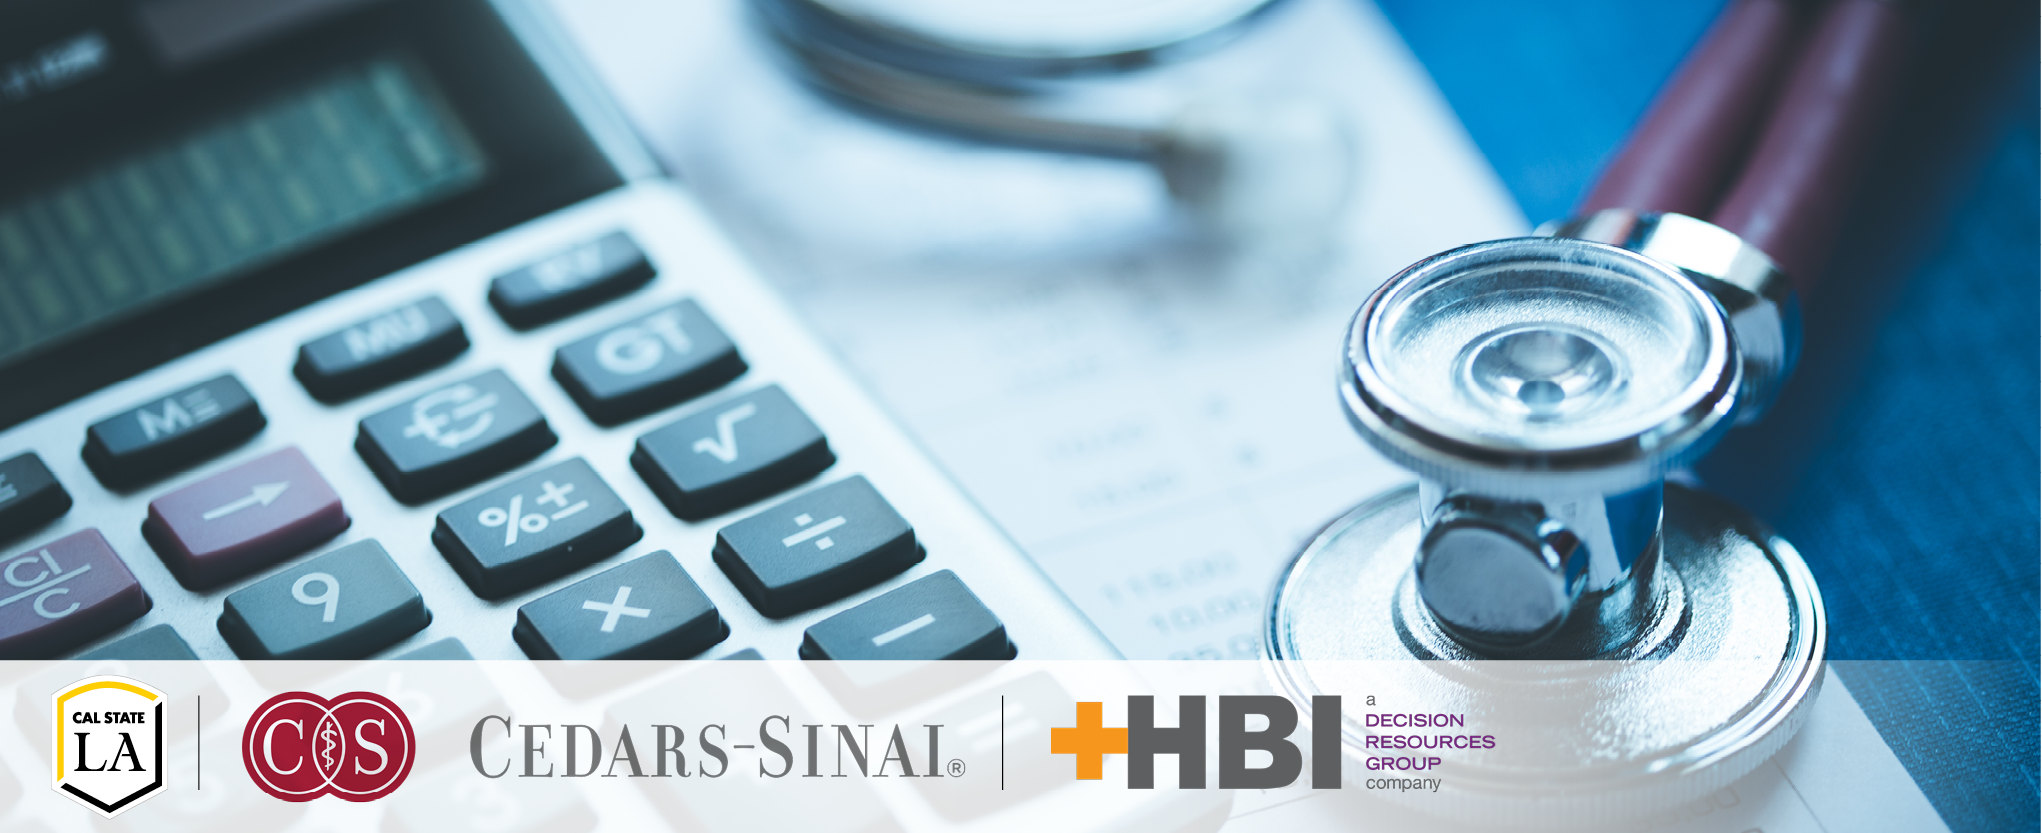 Healthcare Revenue Cycle Administration Program with keyboard and stethoscope images